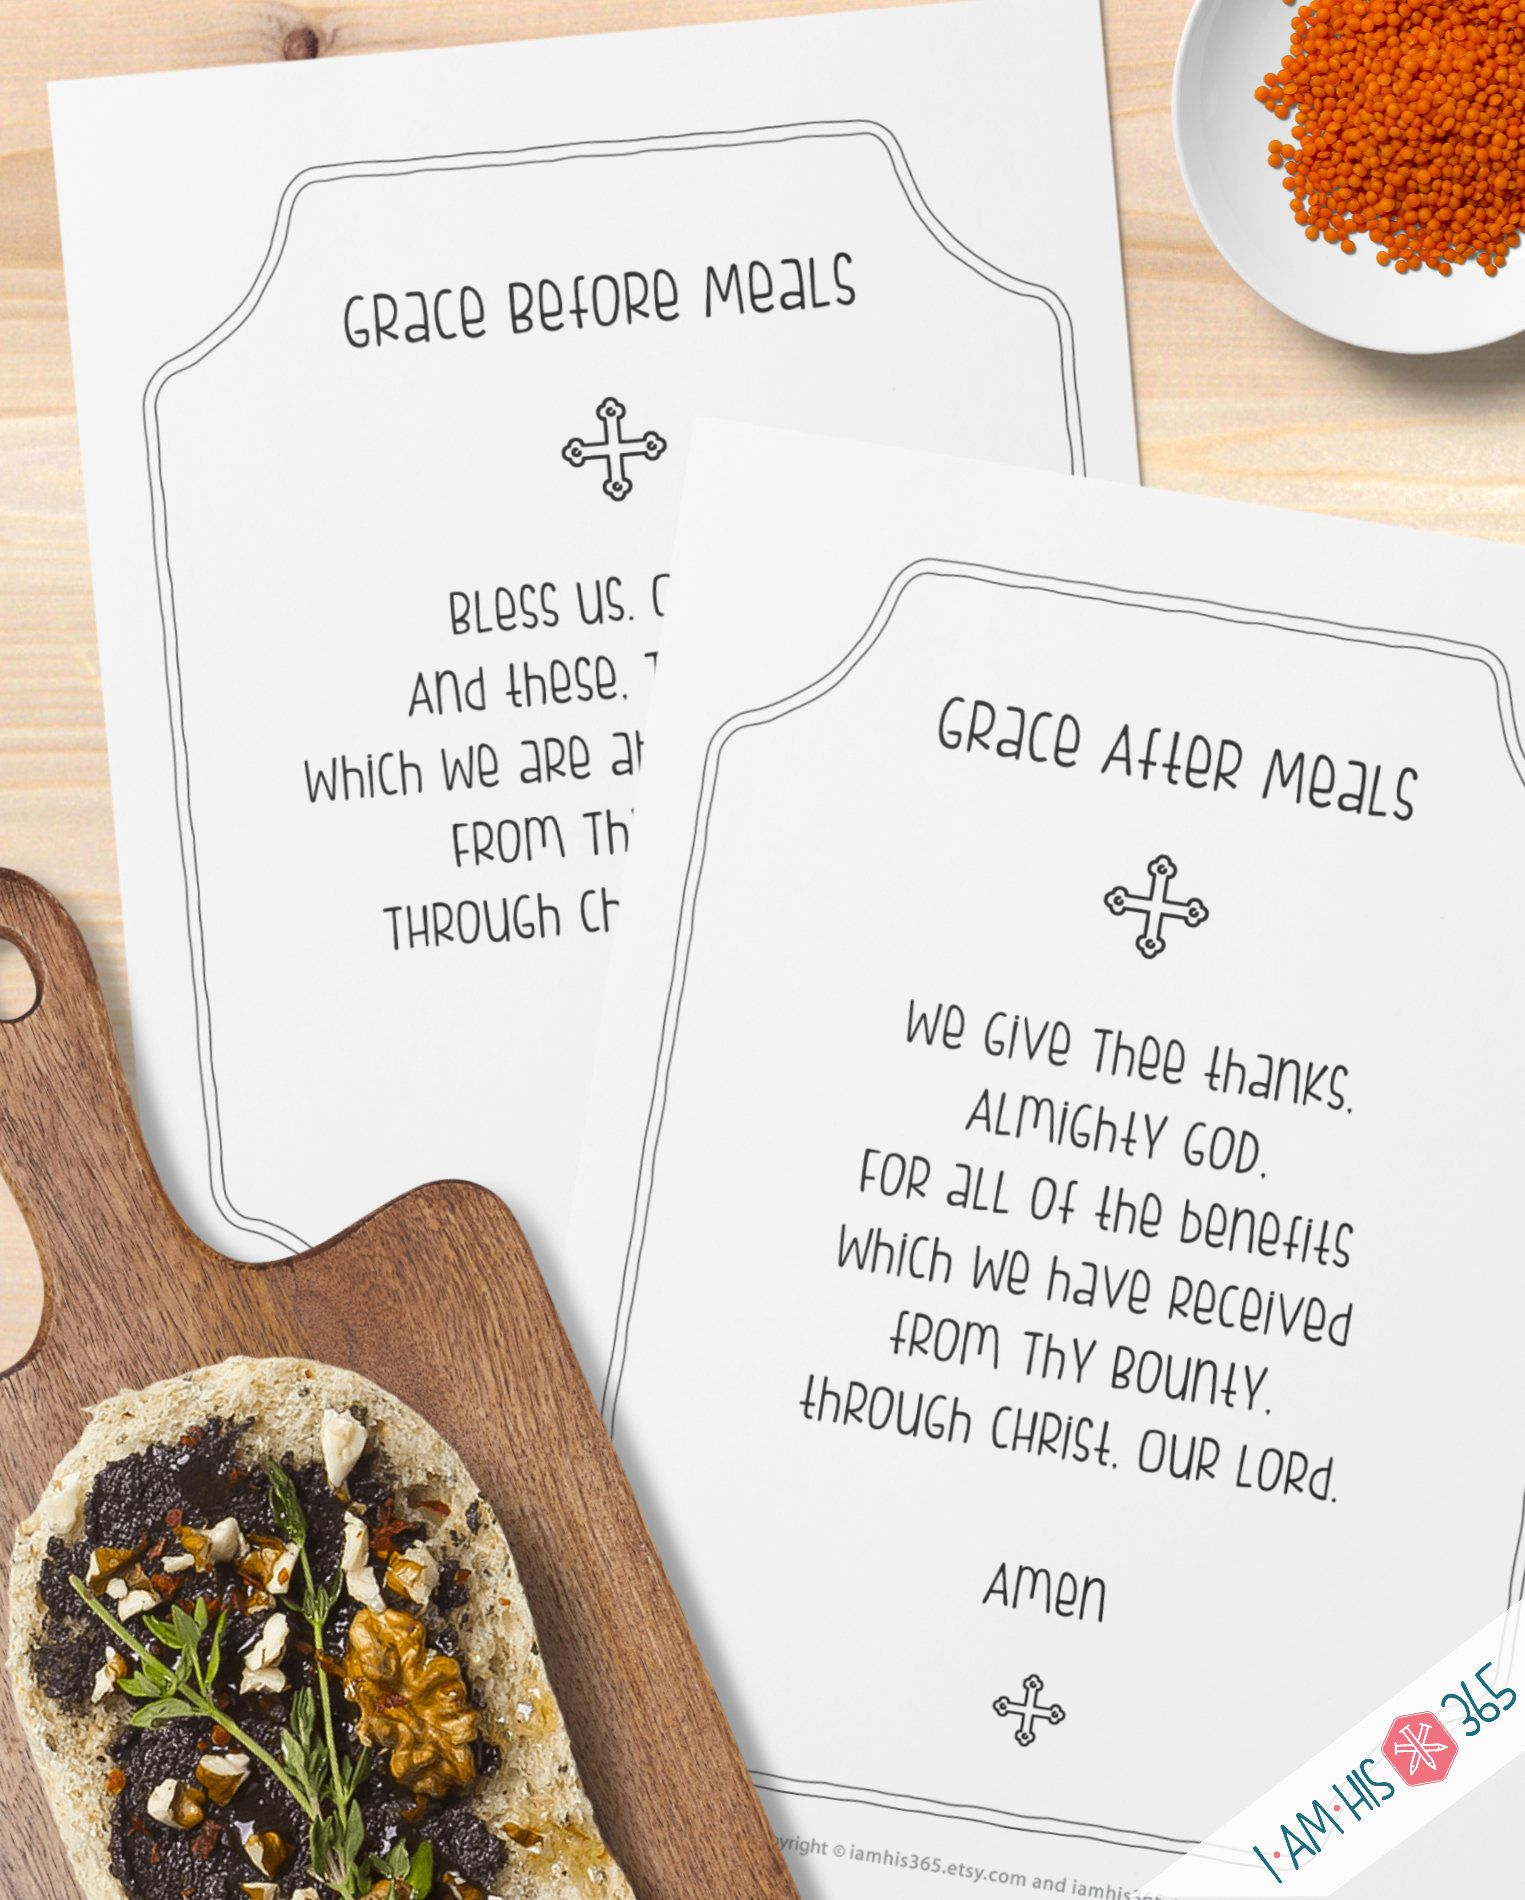 Mealtime Grace Prayer Print Set Of 2 Catholic Prayer Printable Christian Print Lent Pdf Download Catholic Dinner Prayer Christian Prints Dinner Prayer